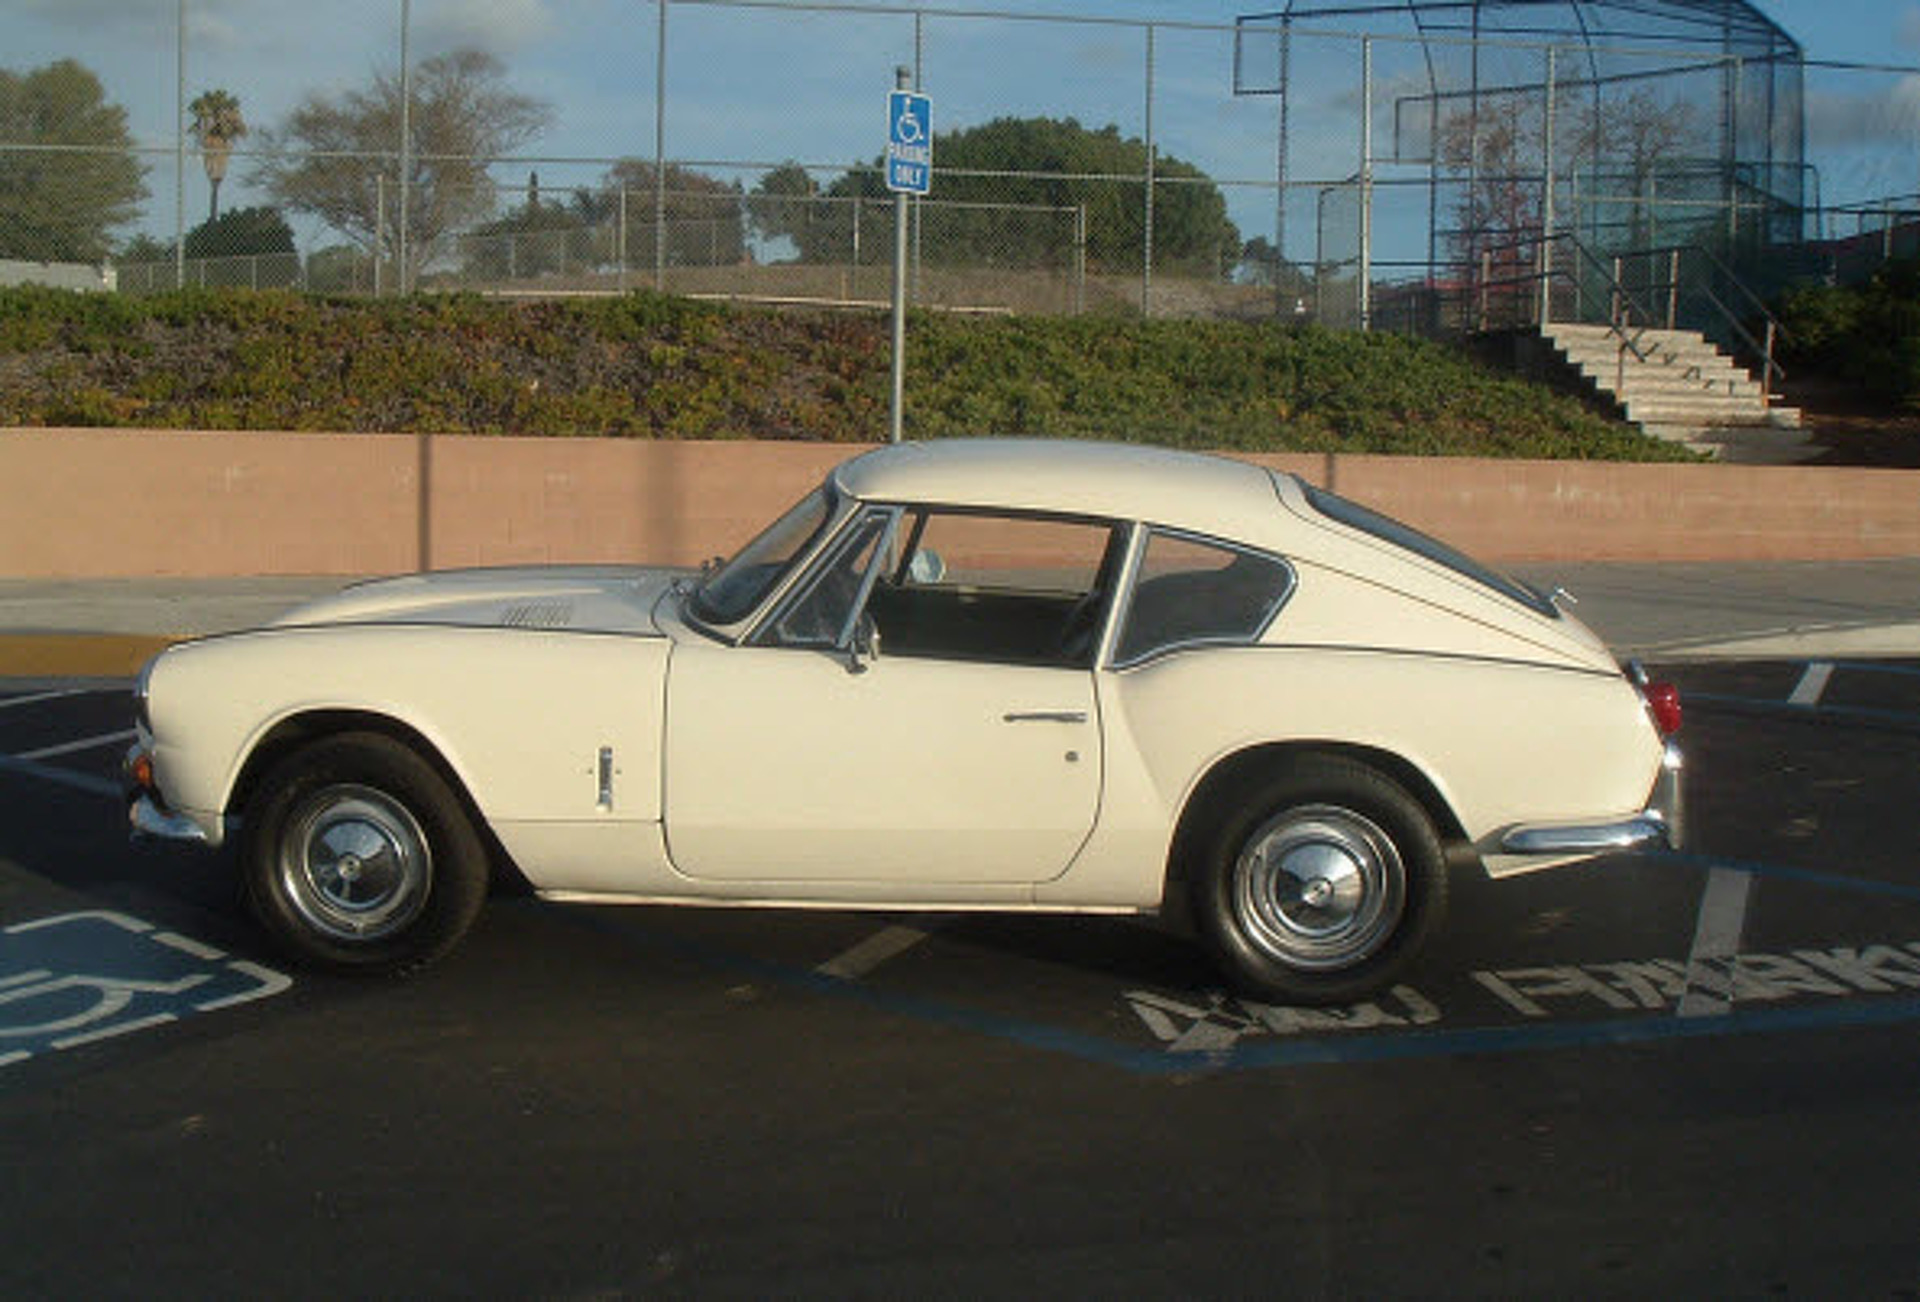 eBay Car of the Week: 1968 Triumph GT6 Mk1